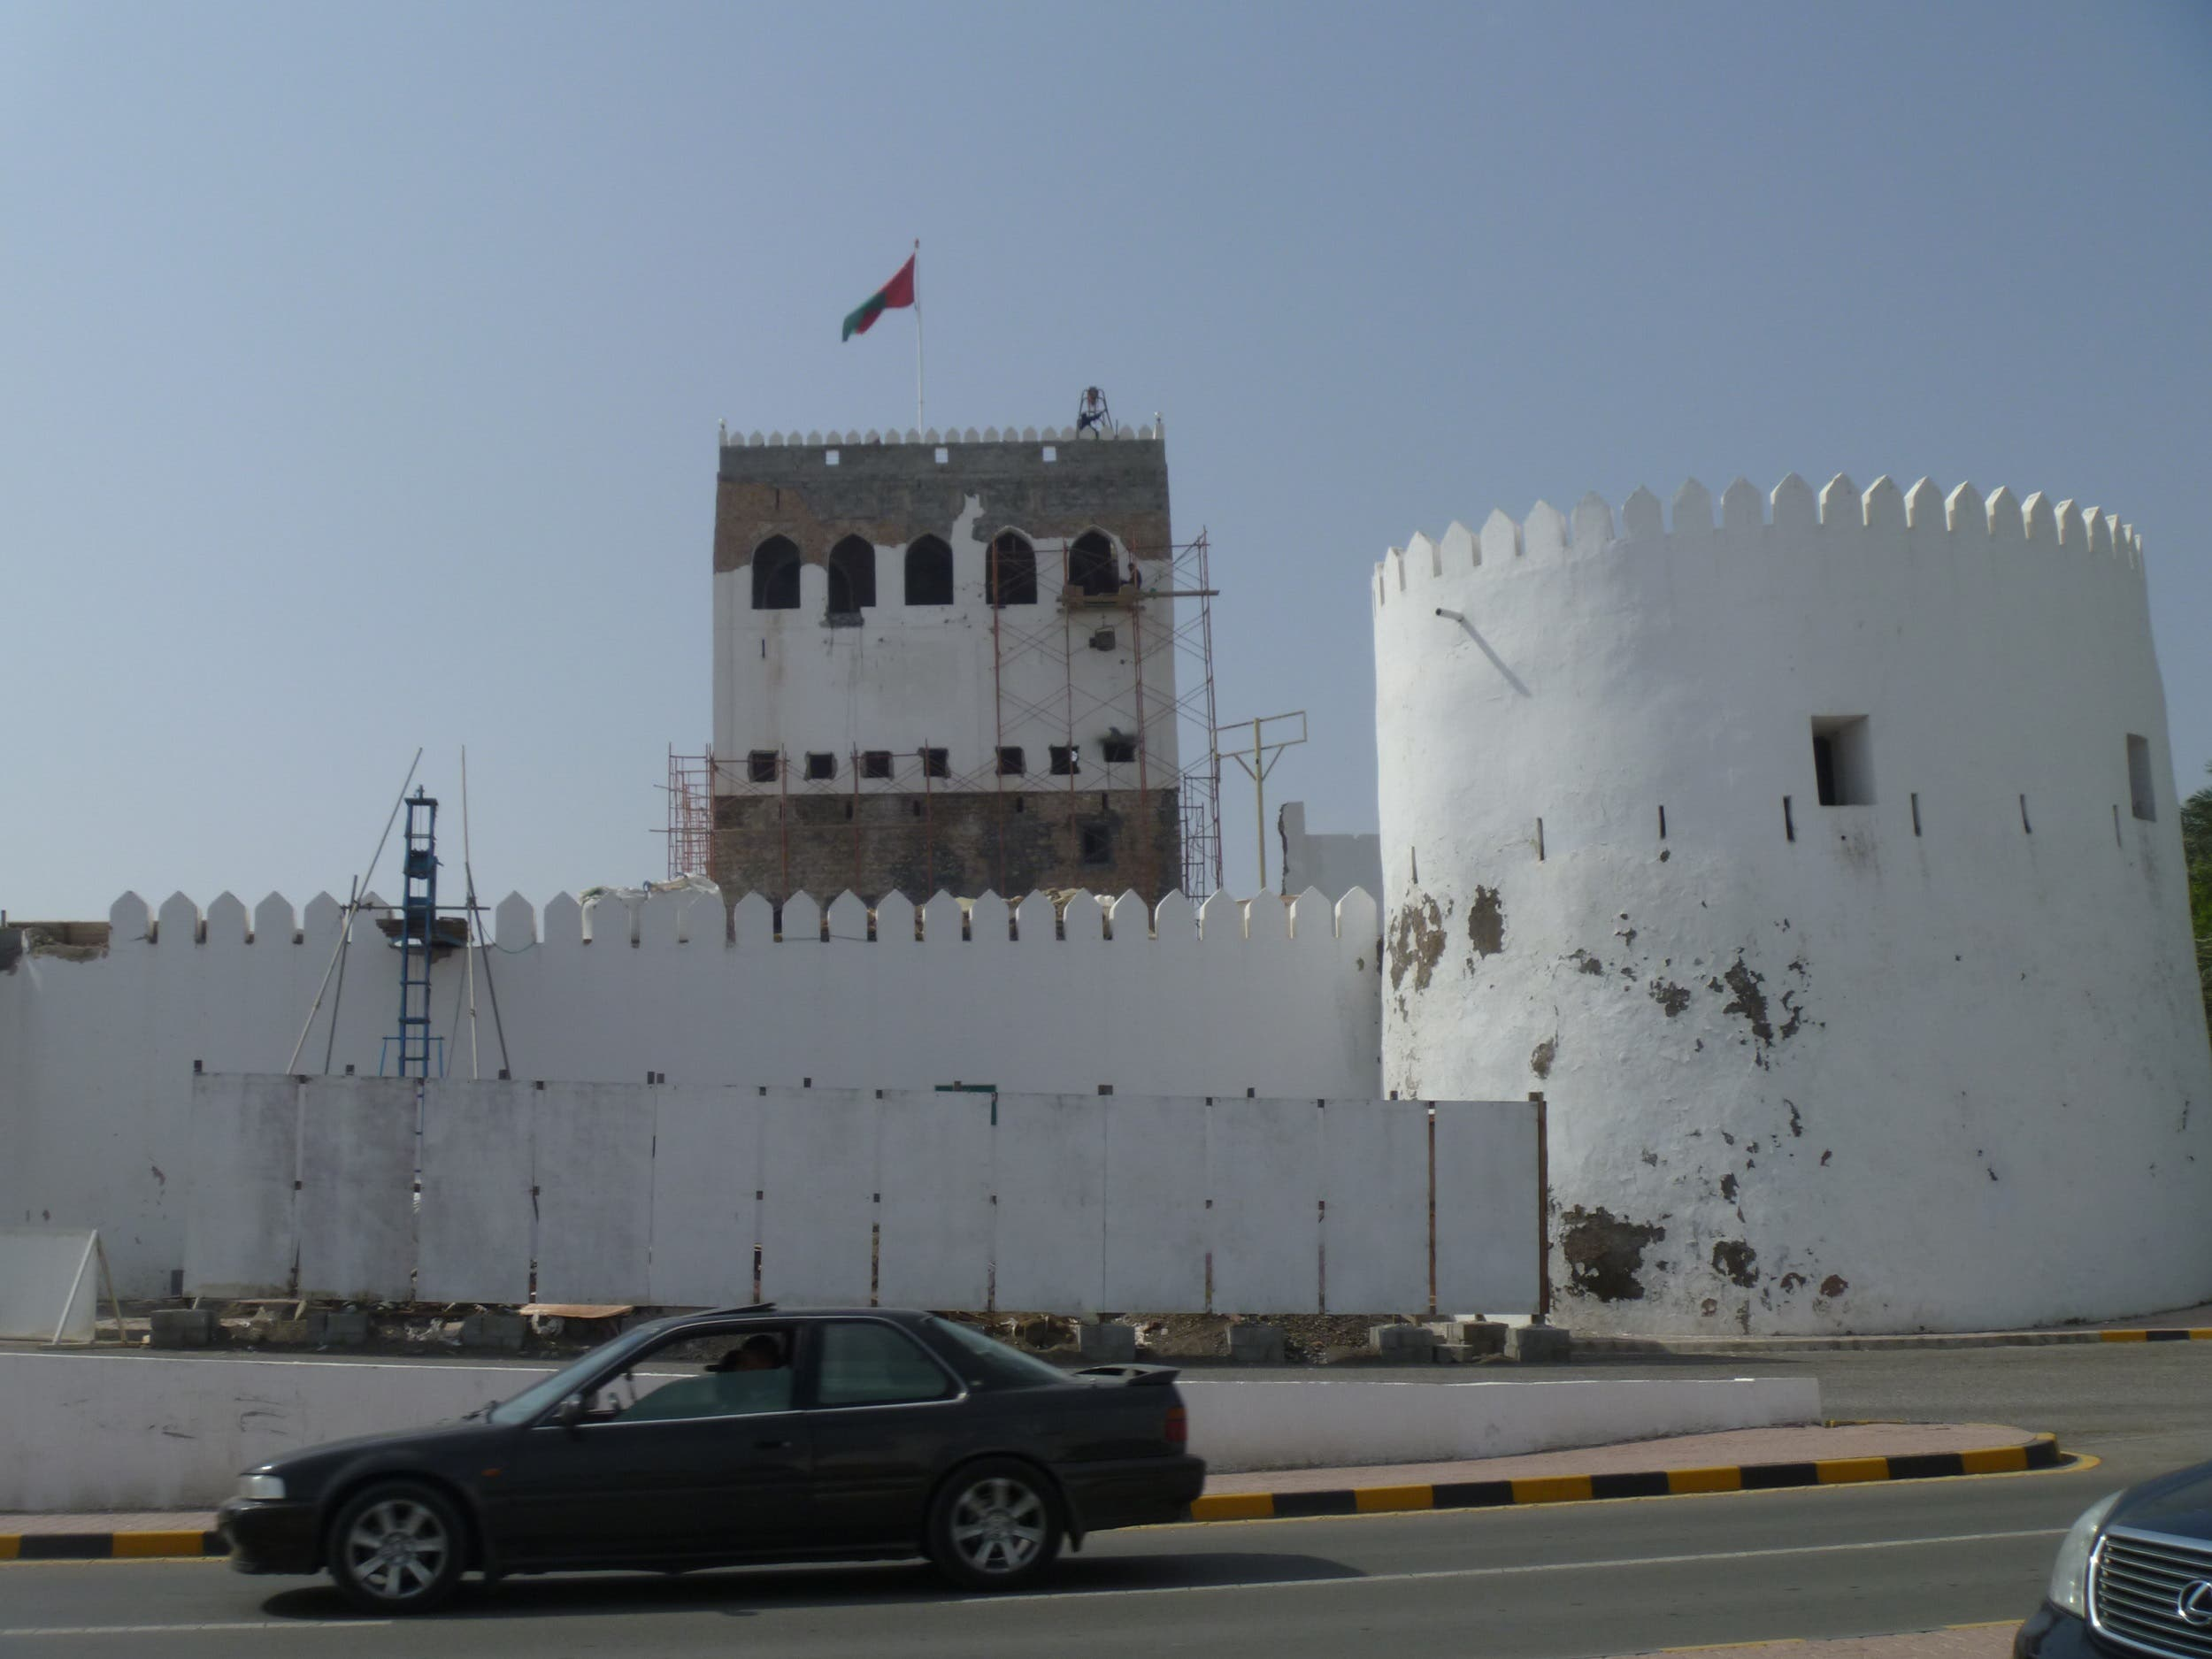 Sohar, the legendary home of Sinbad, is home to Sohar fort which has seven towers of its restored fort, dazzling white against the deep blue of the sky and sea. (Supplied)